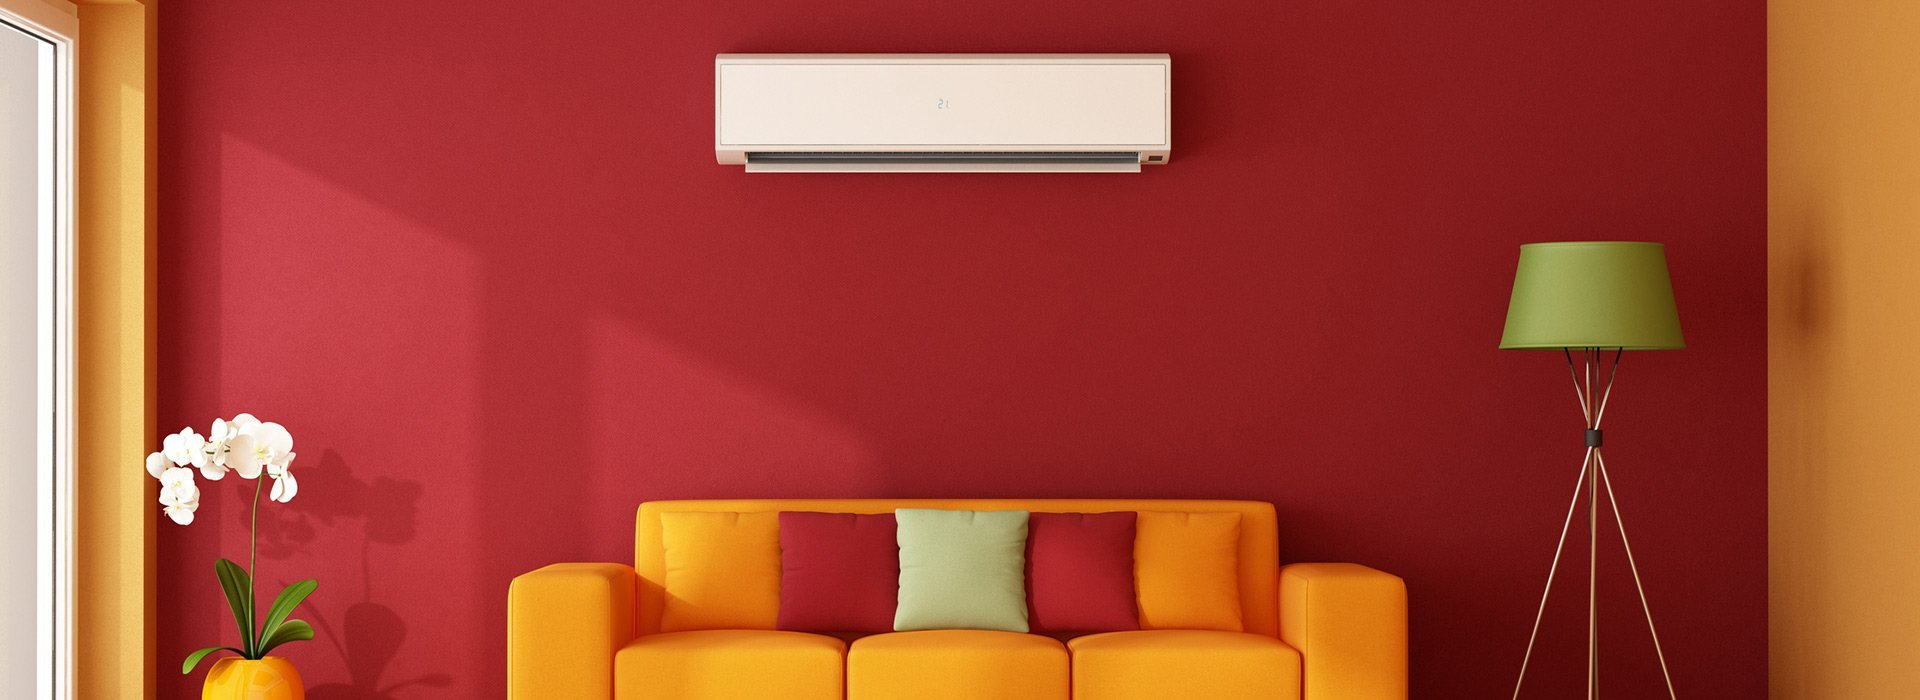 split n stawell heating and colling air condition in living room